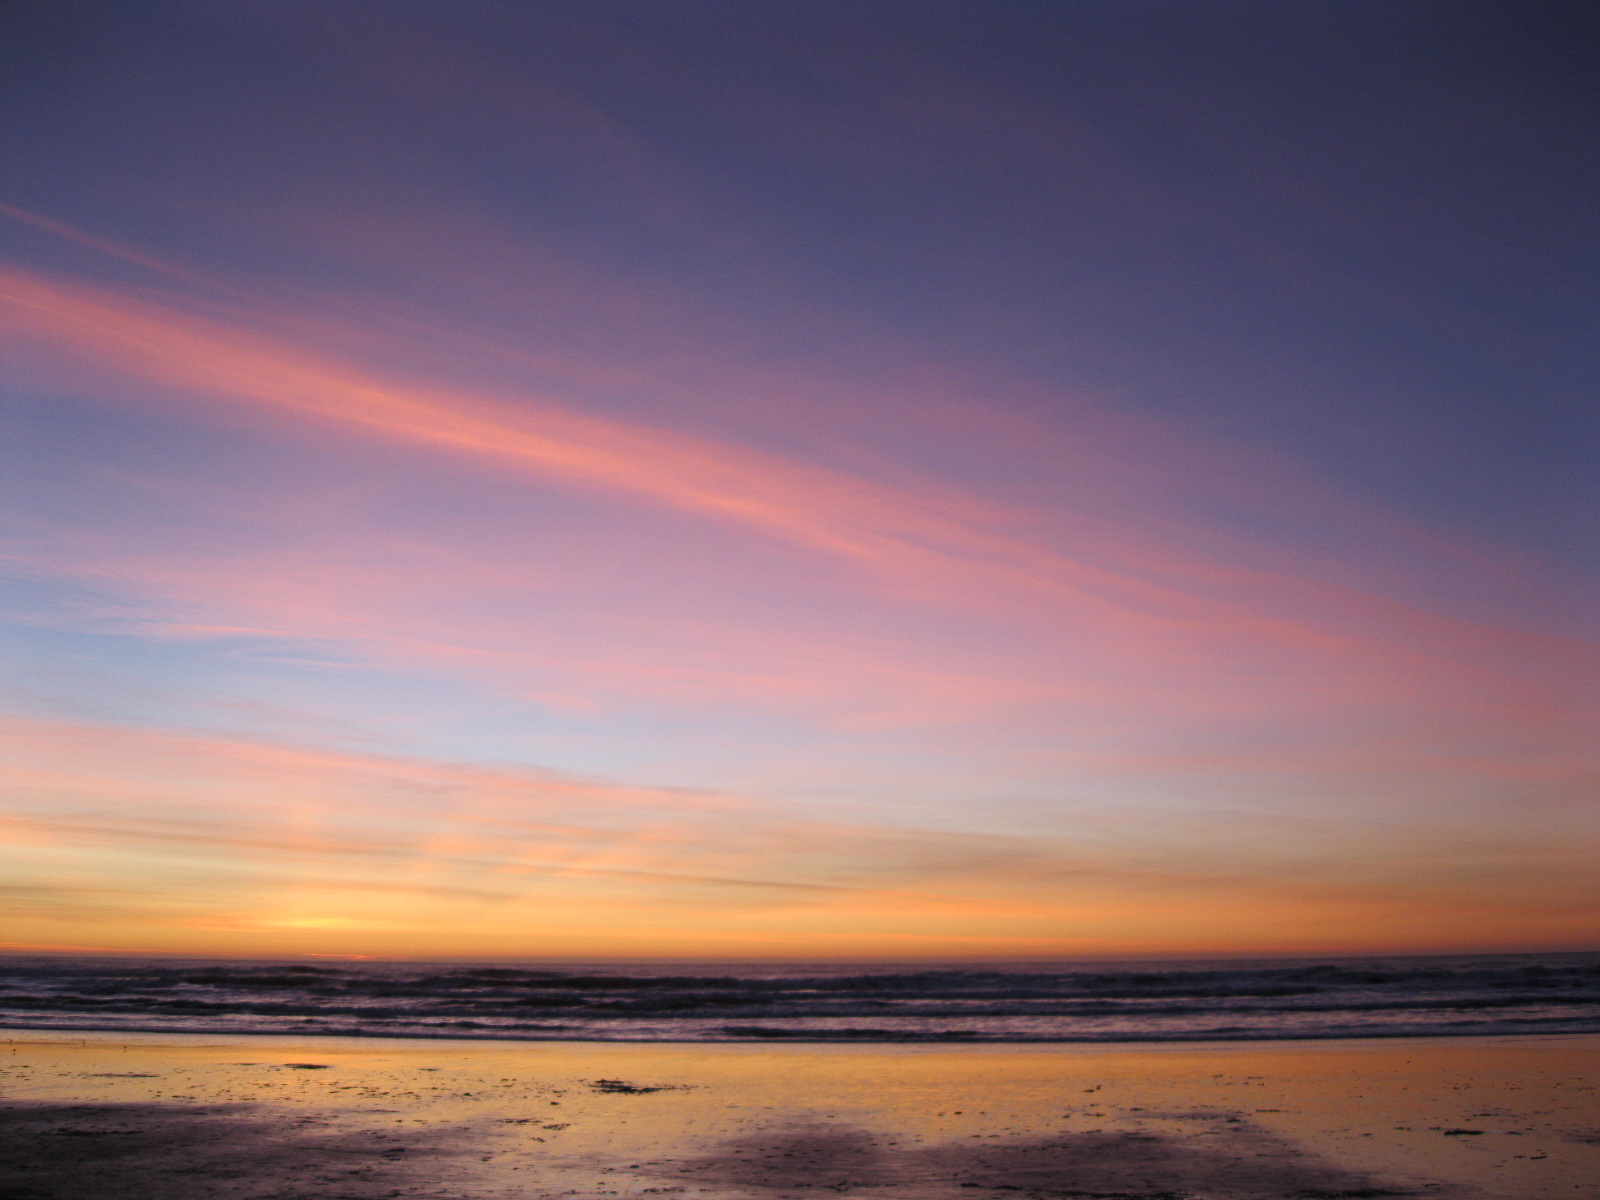 #2: sunset, ocean beach #2